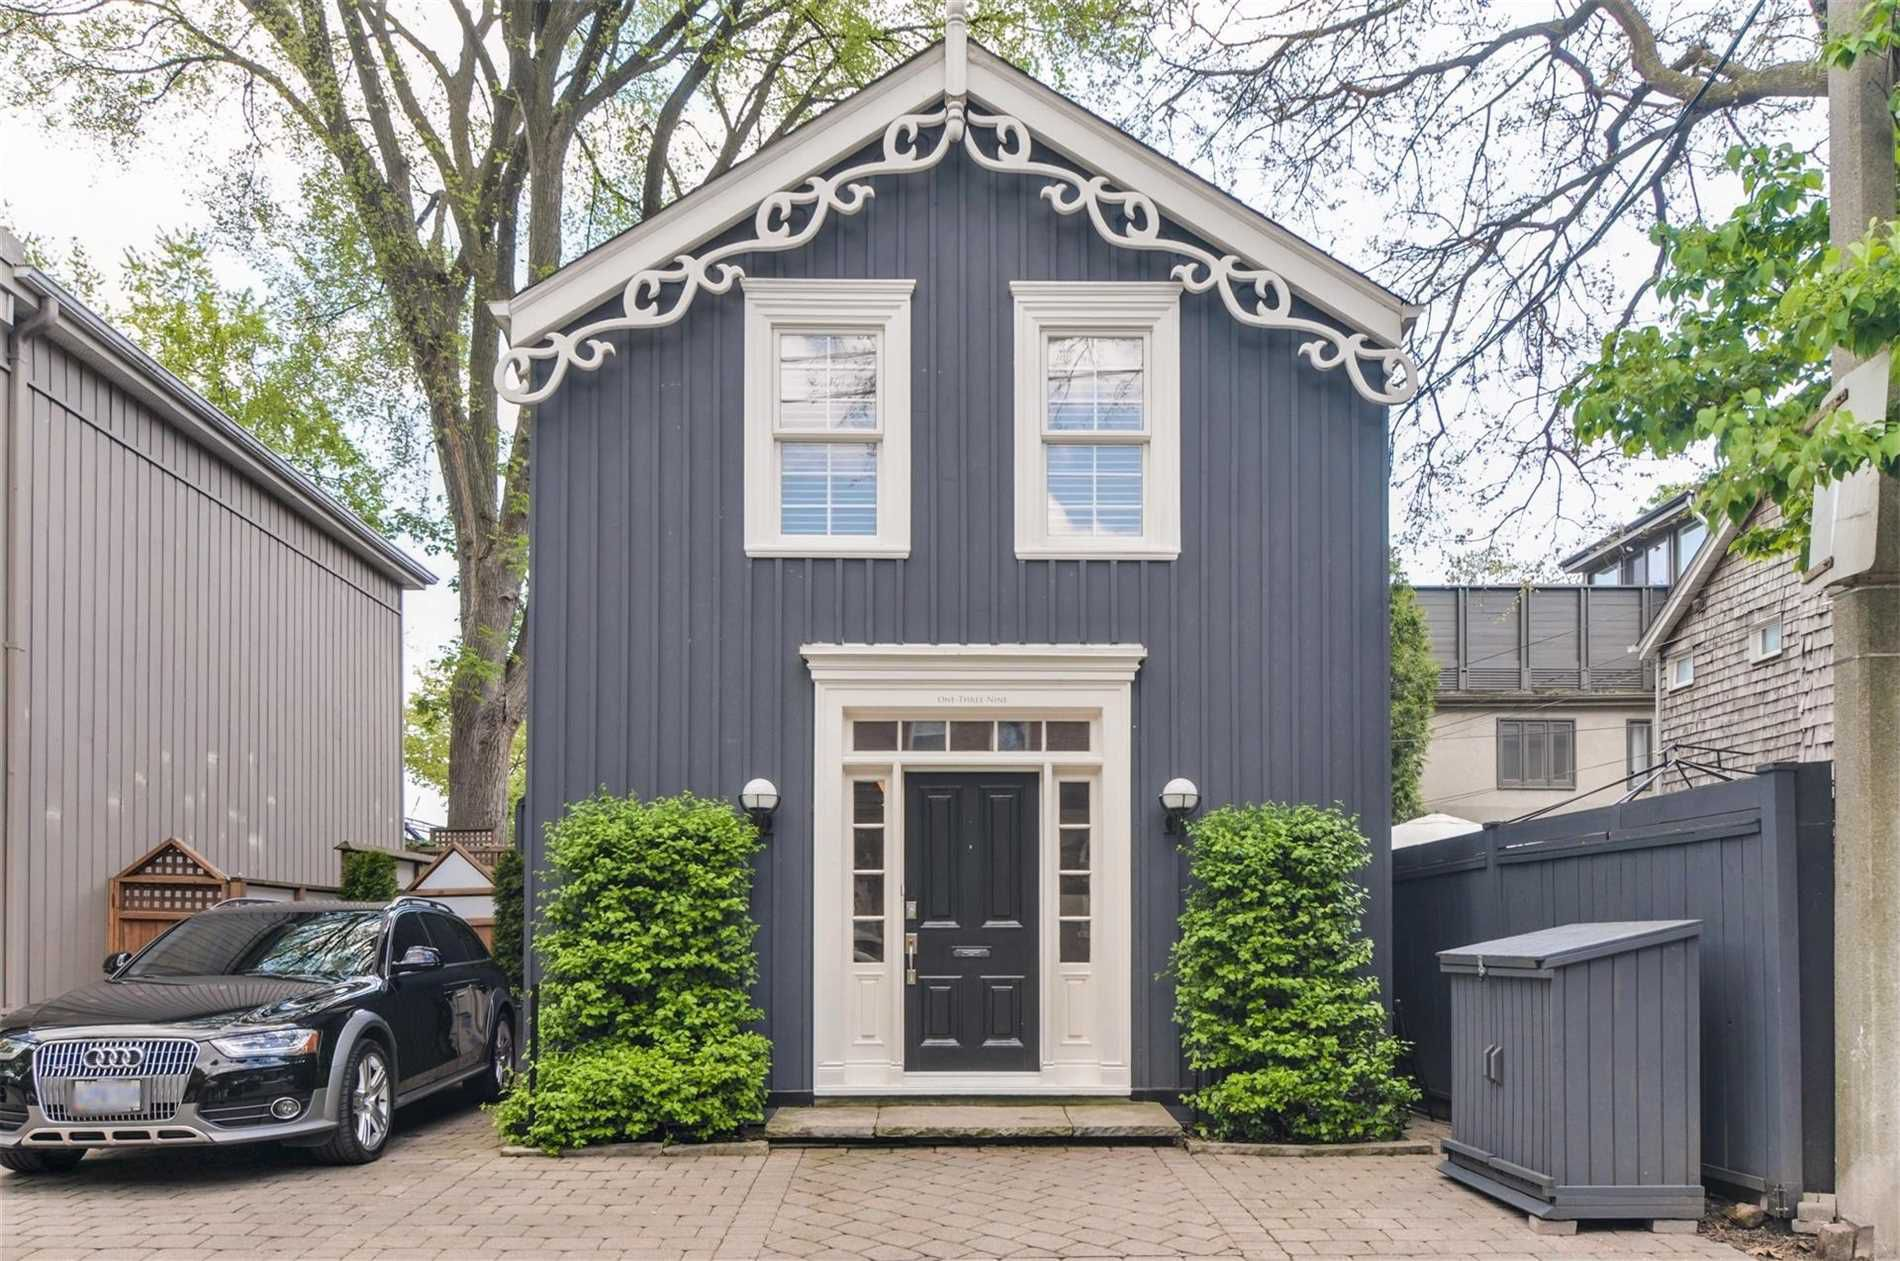 Main Photo: 139 Spruce Street in Toronto: Cabbagetown-South St. James Town House (2-Storey) for sale (Toronto C08)  : MLS®# C4466619